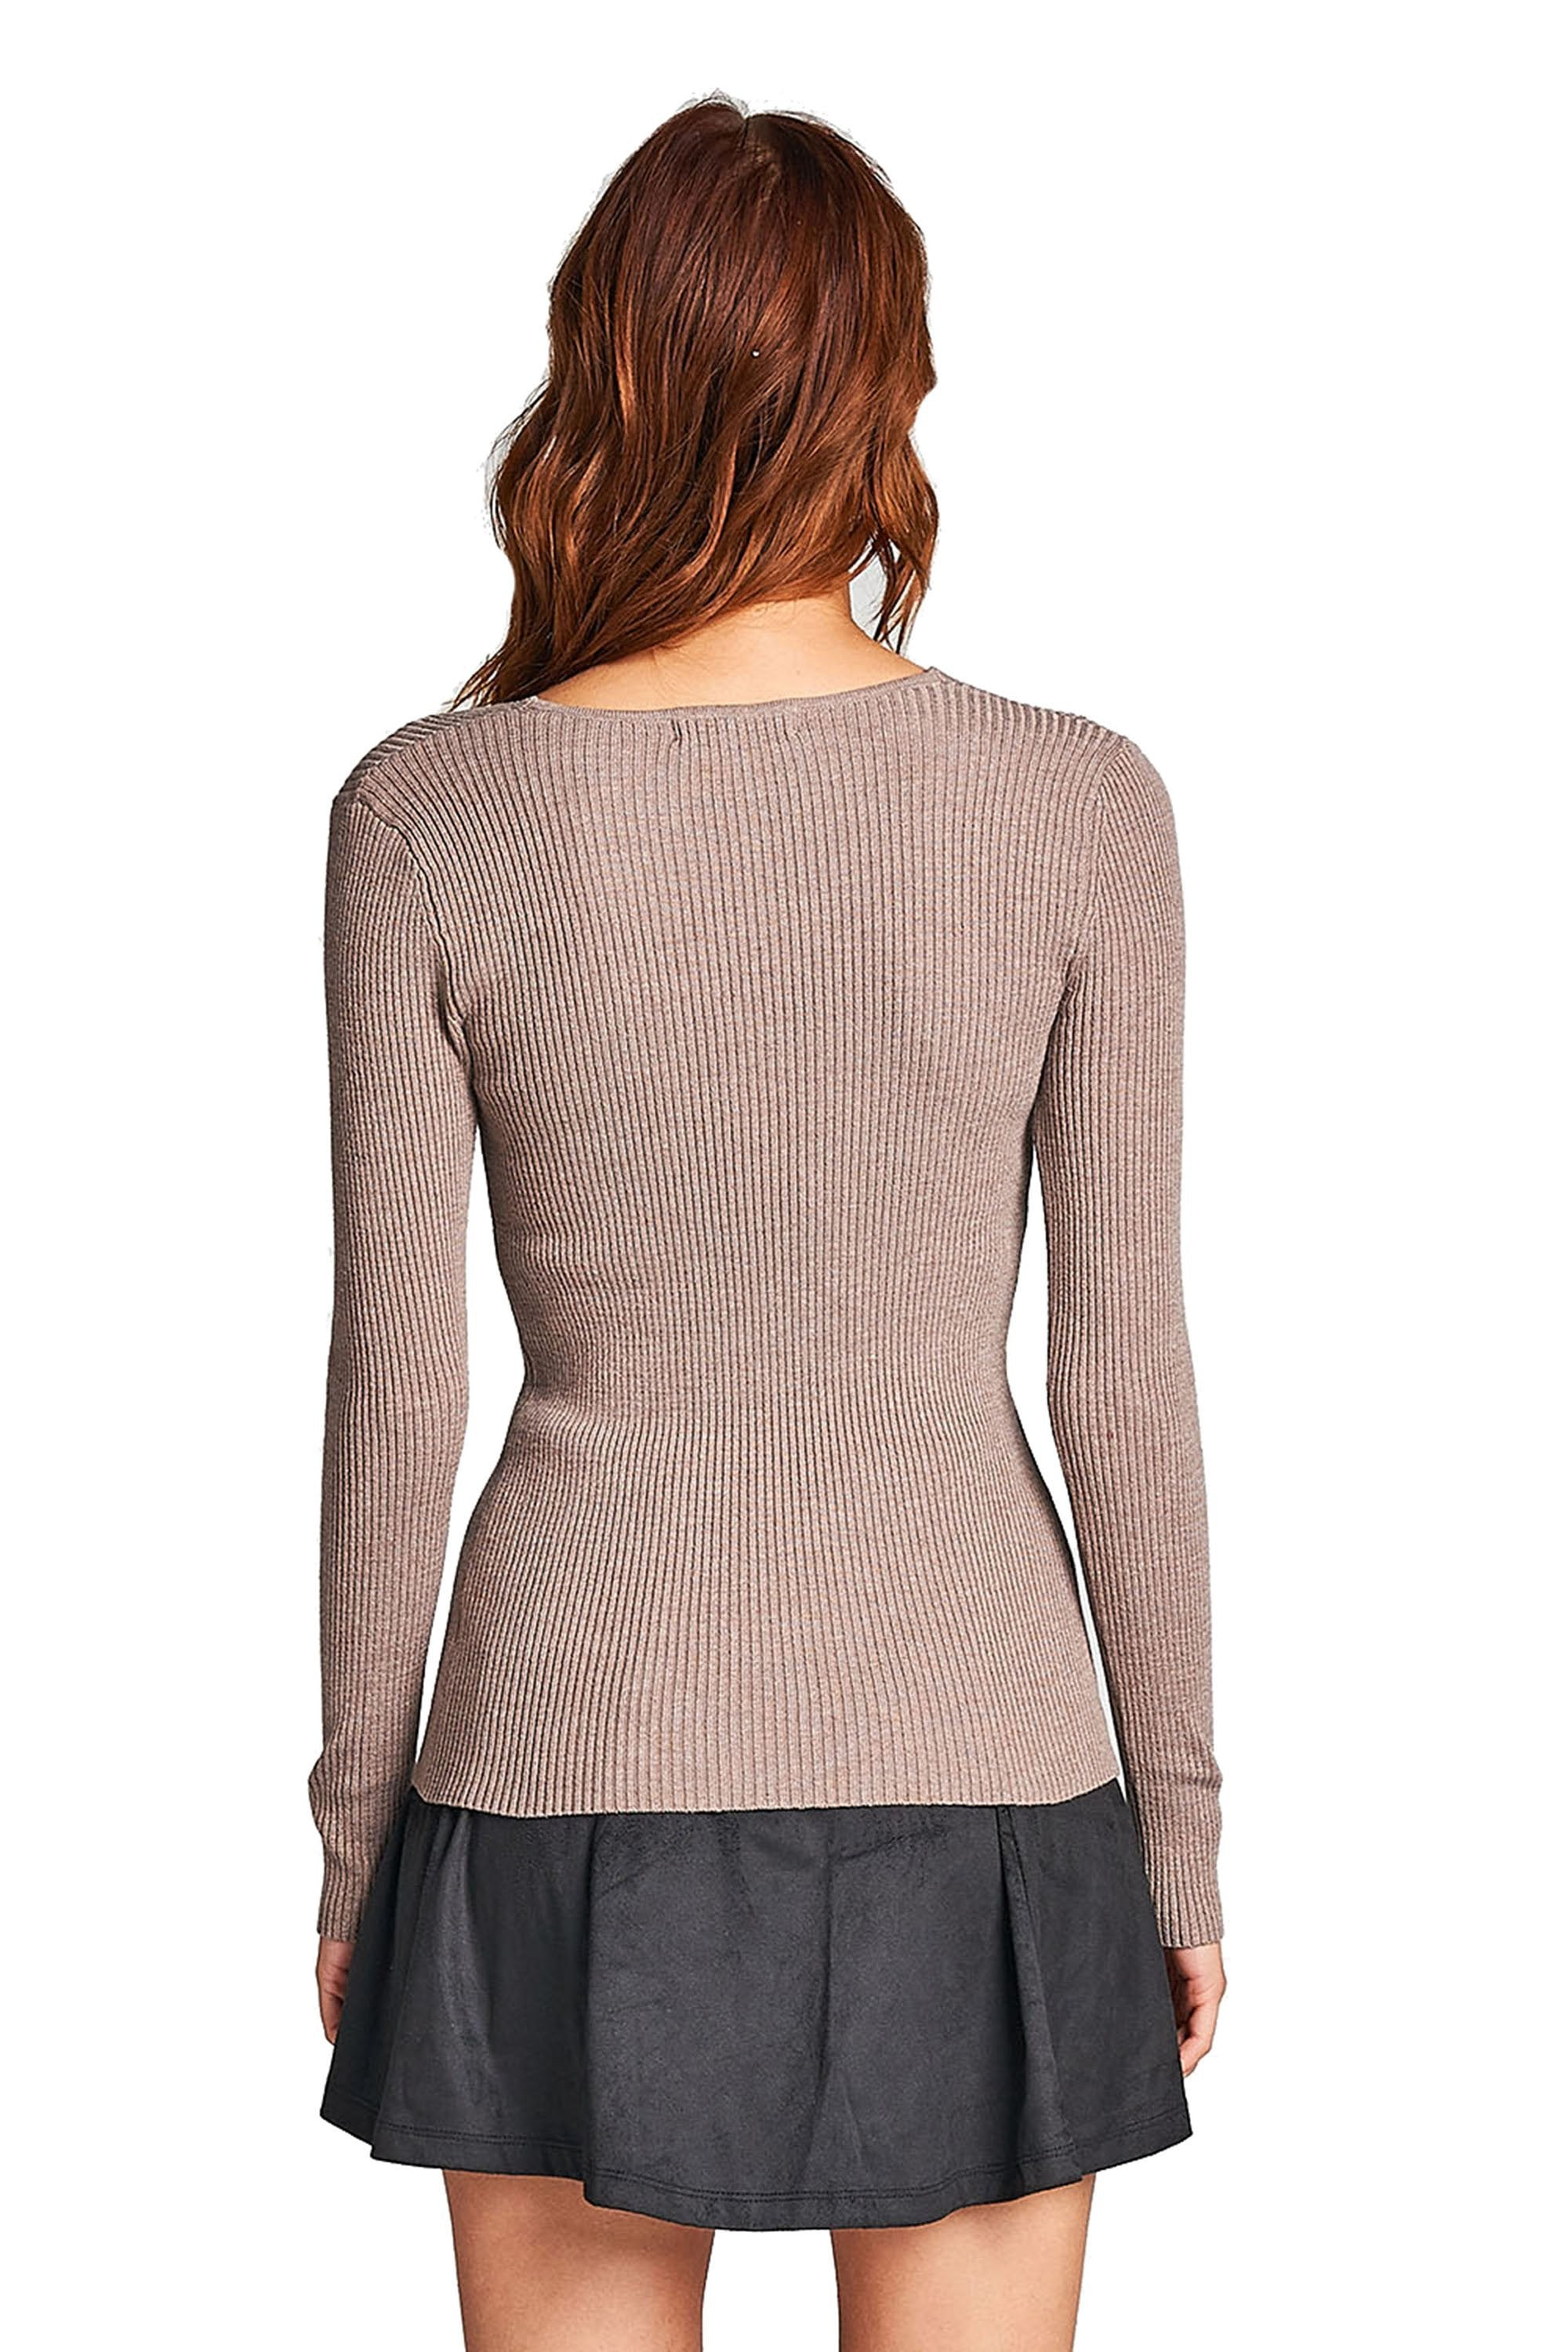 Plain Solid Stretch Fitted Long Sleeve V Neck Ribbed Knit Lightweight Sweater Top